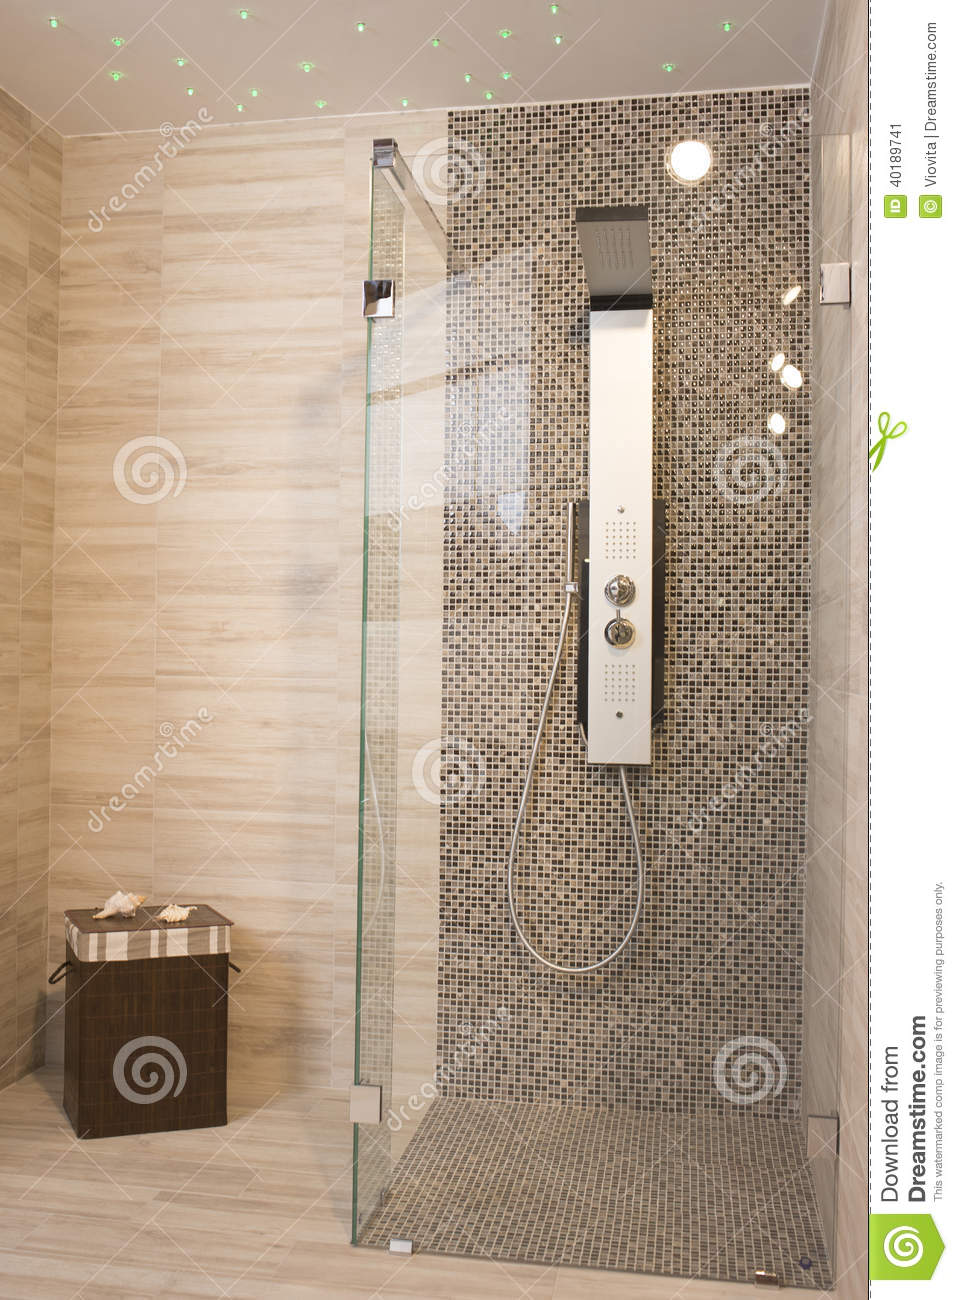 Douche moderne photo stock image 40189741 for Photos douches modernes